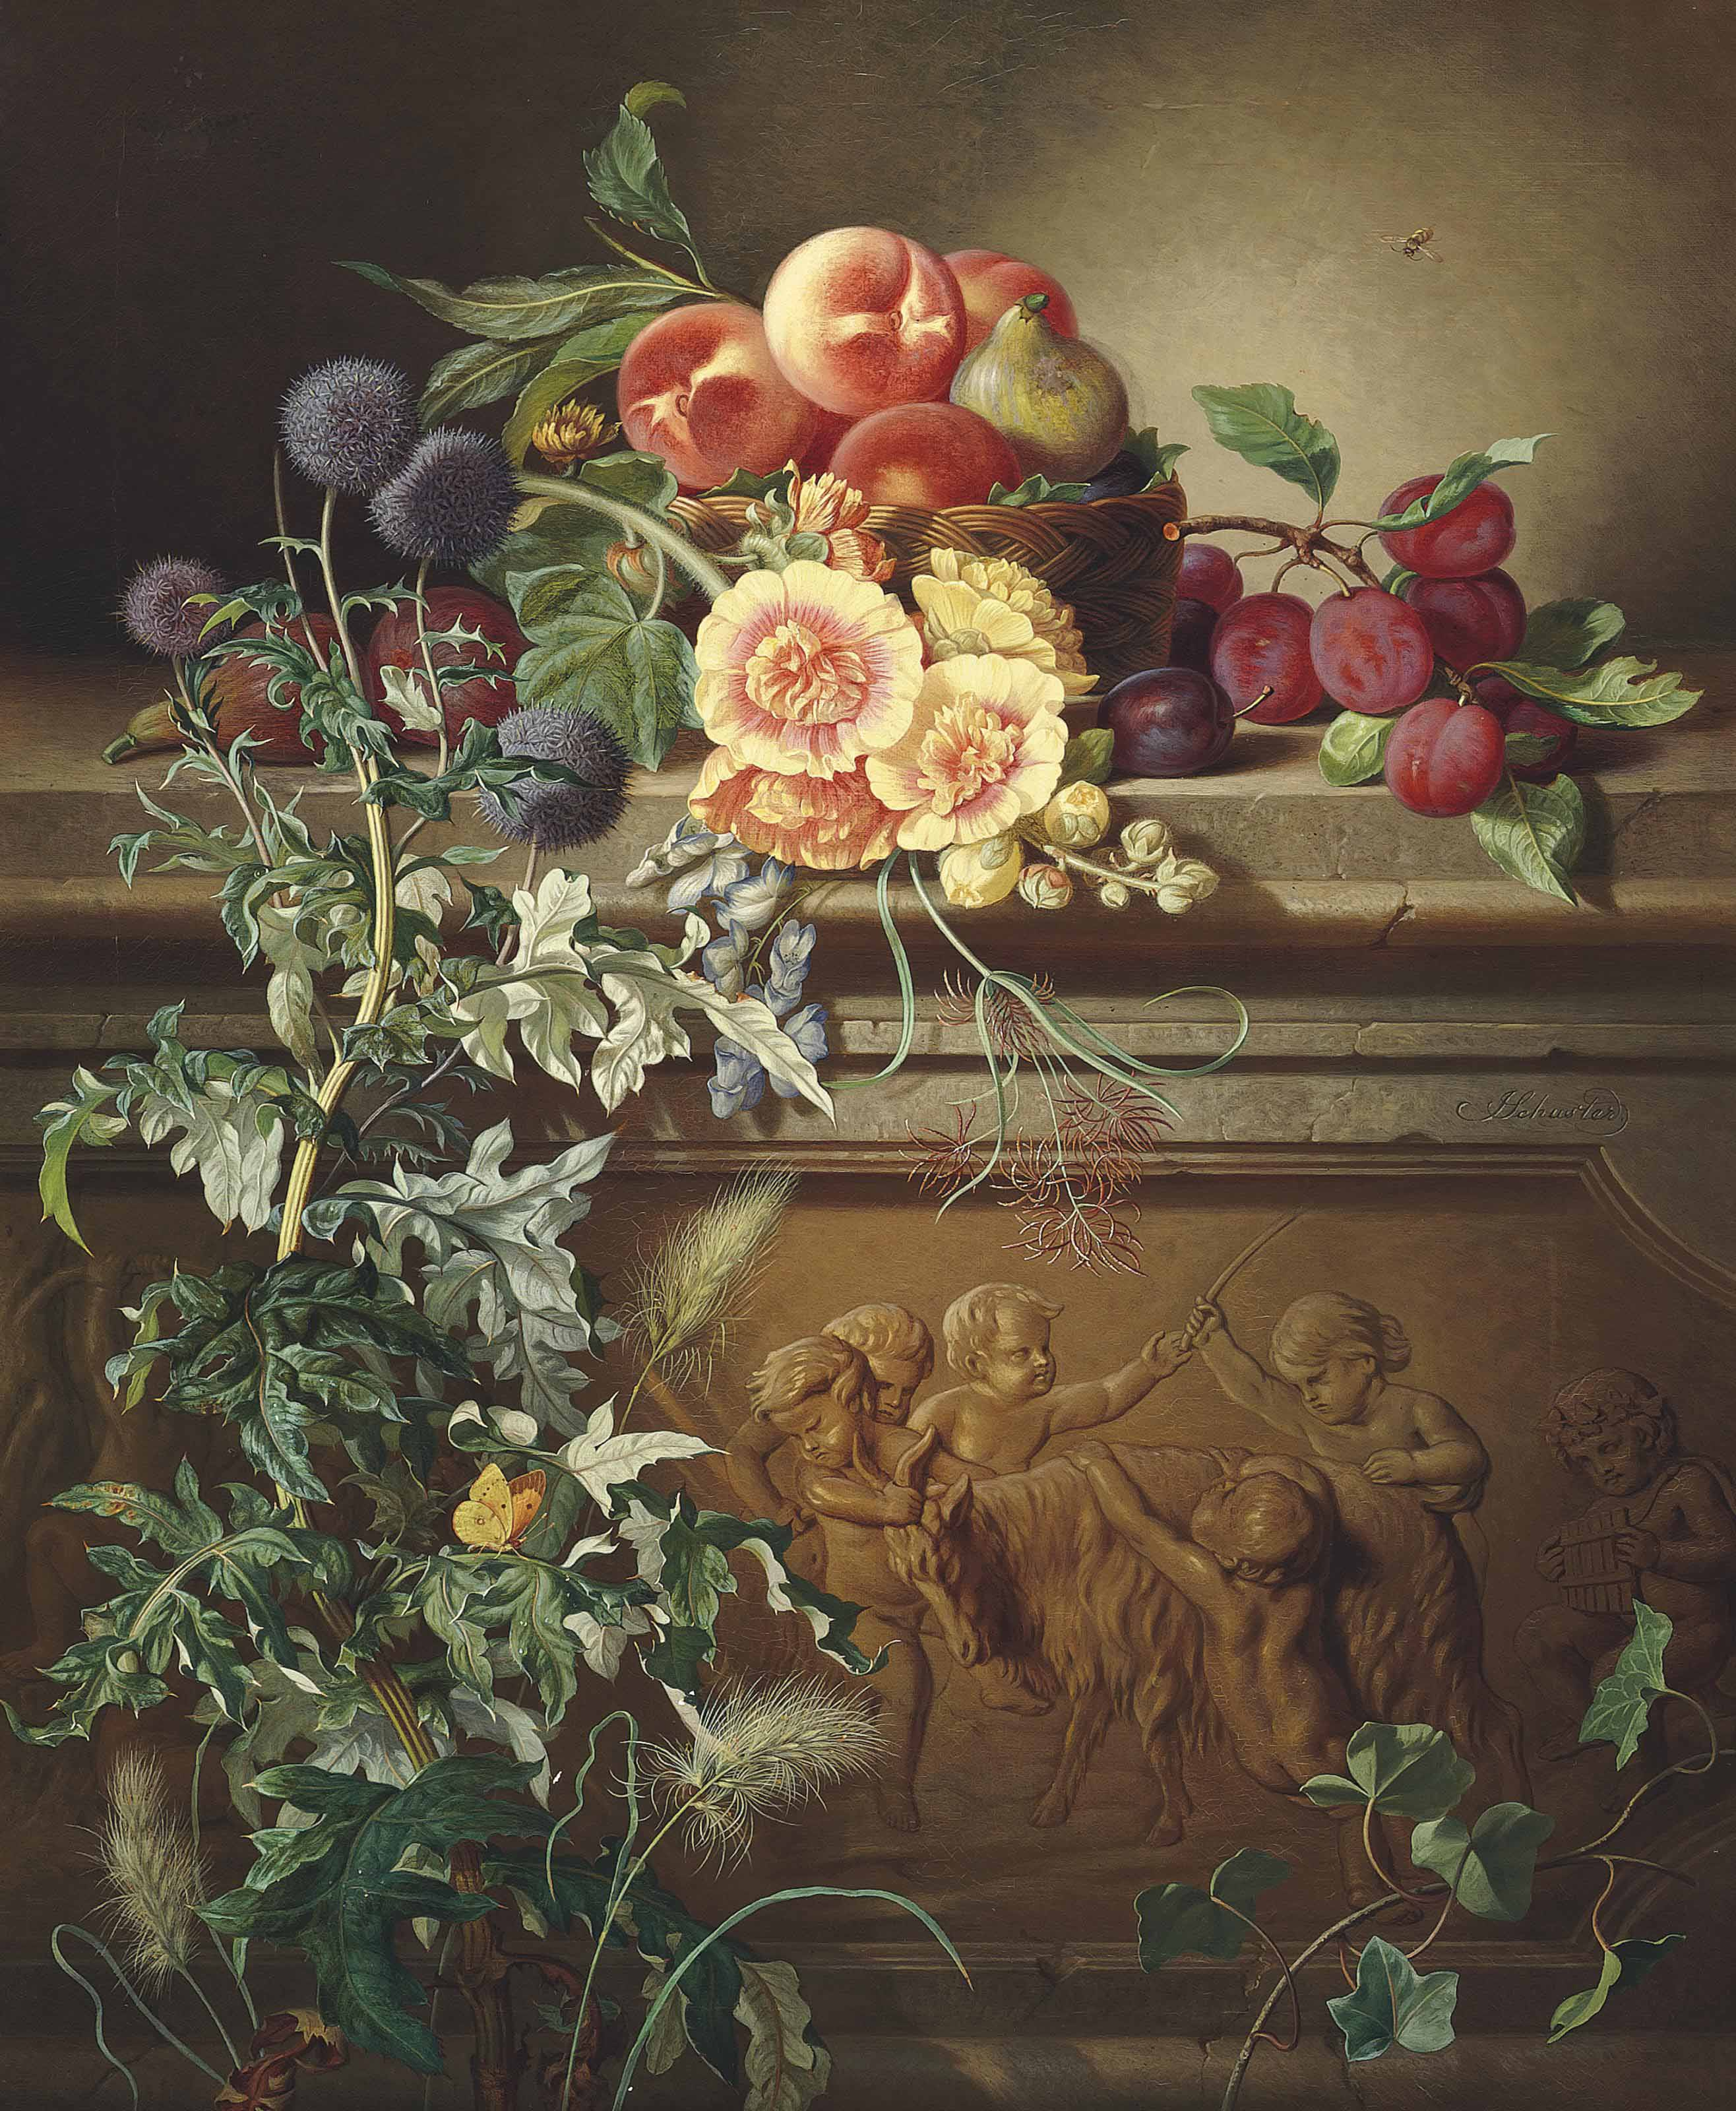 Apples and a fig in a basket, figs and plums on stone ledge decorated with a frieze of putti and a goat, with thistle